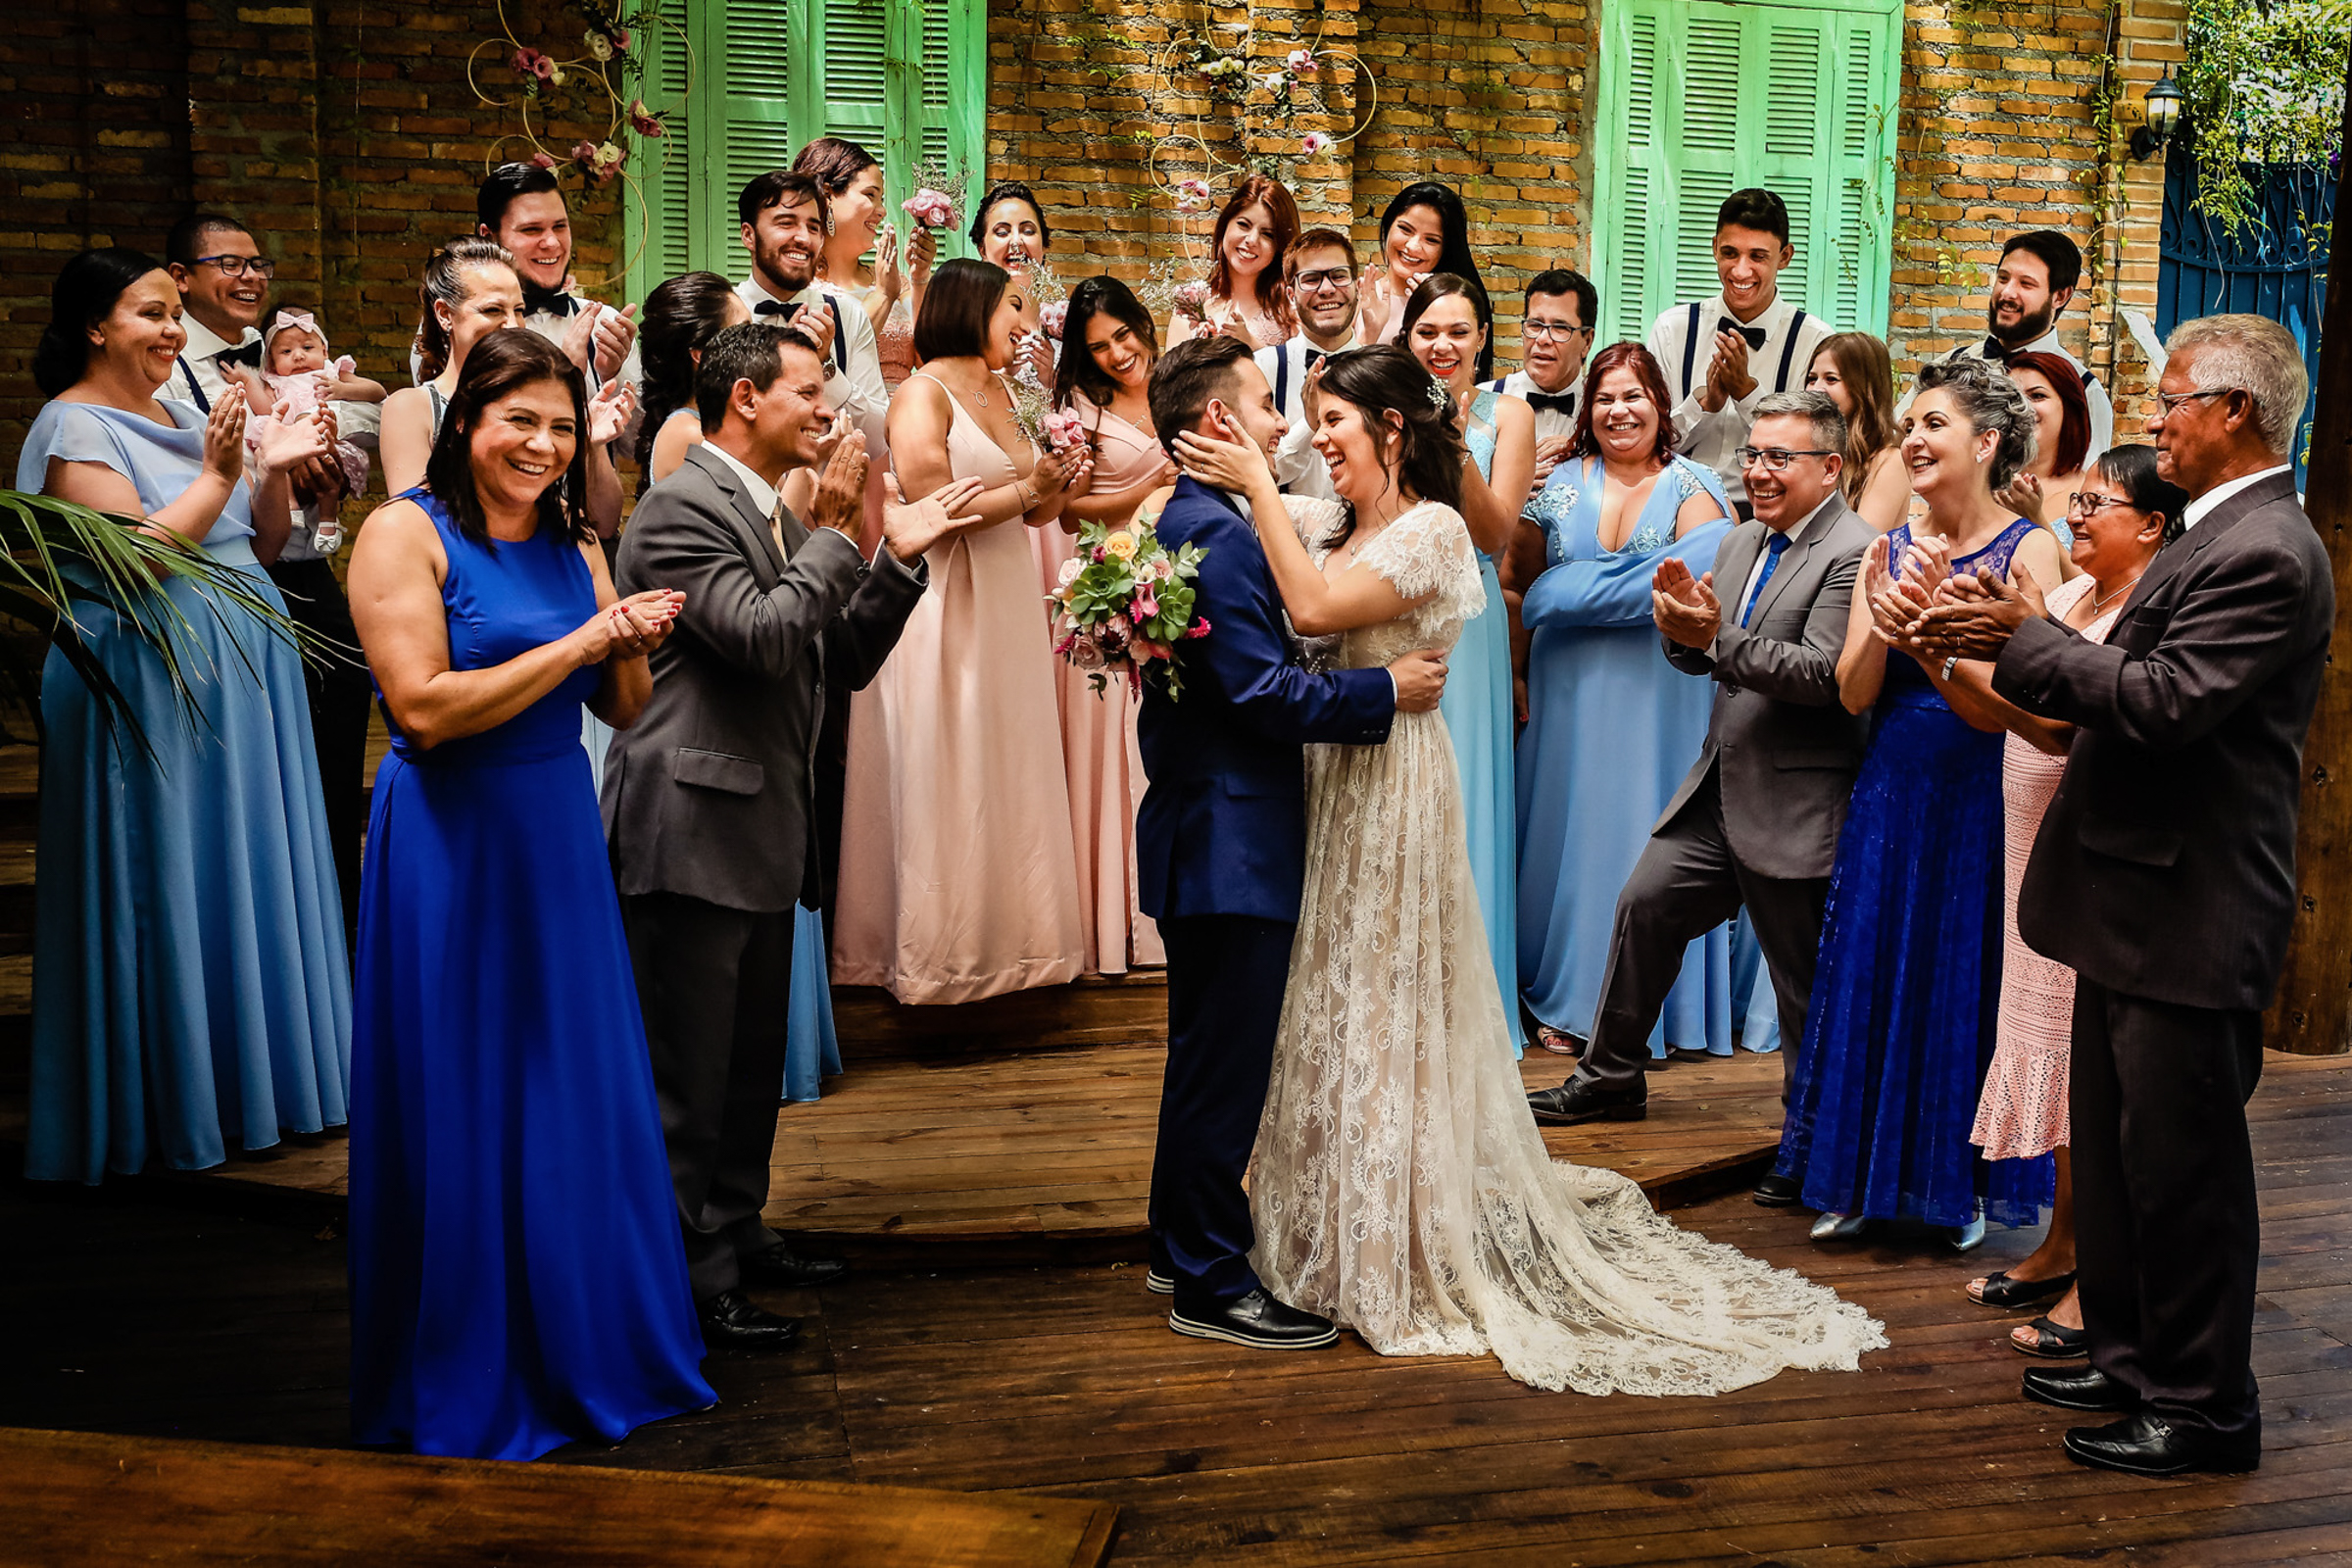 Couple surrounded by family and guests - photo by Área da Fotografia - Portugal photographer